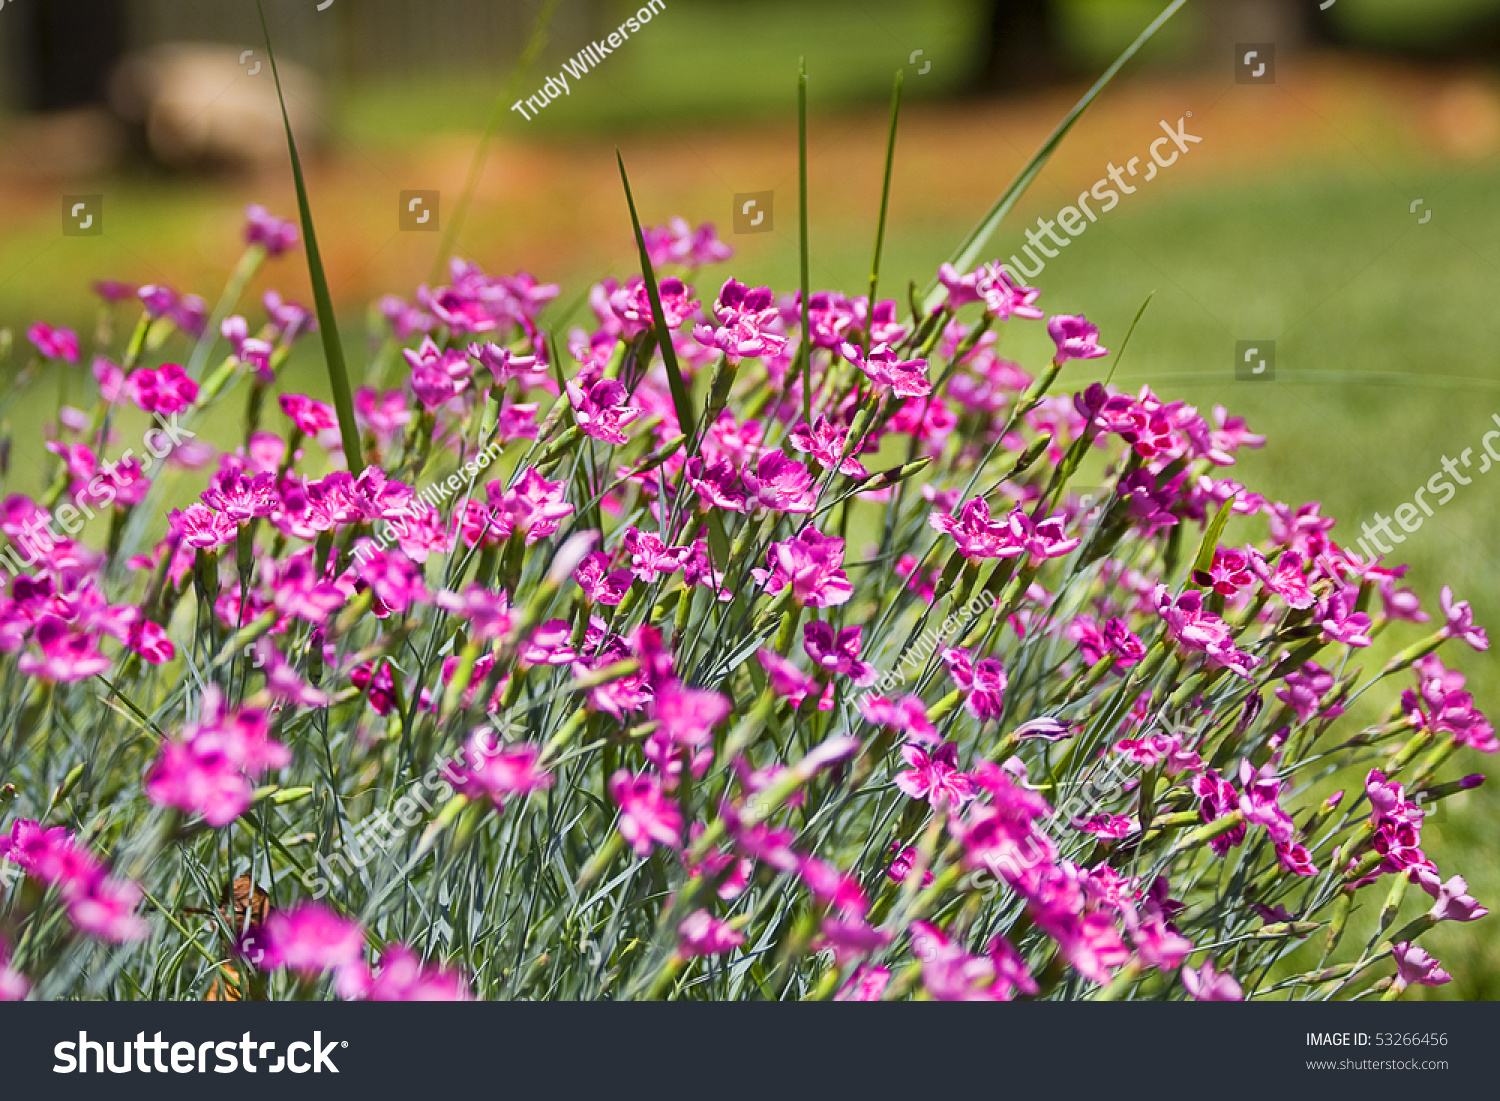 Small Purple Flowers Bits Grass Throughout Stock Photo Image